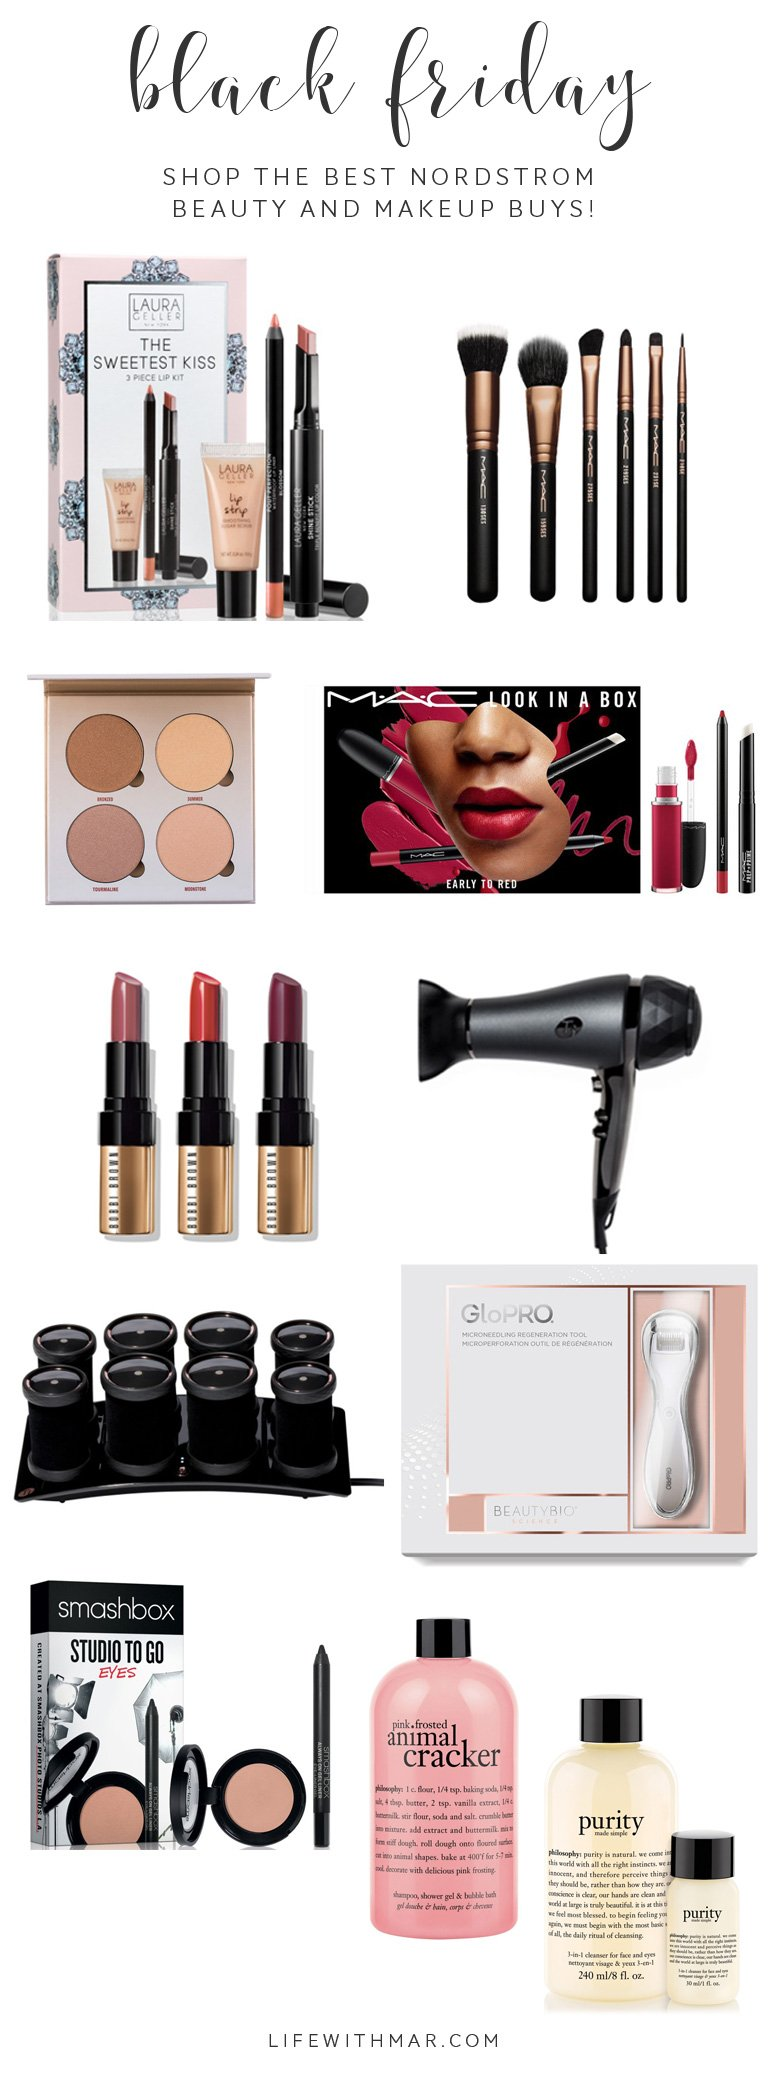 2017 Nordstrom black friday beauty makeup deals